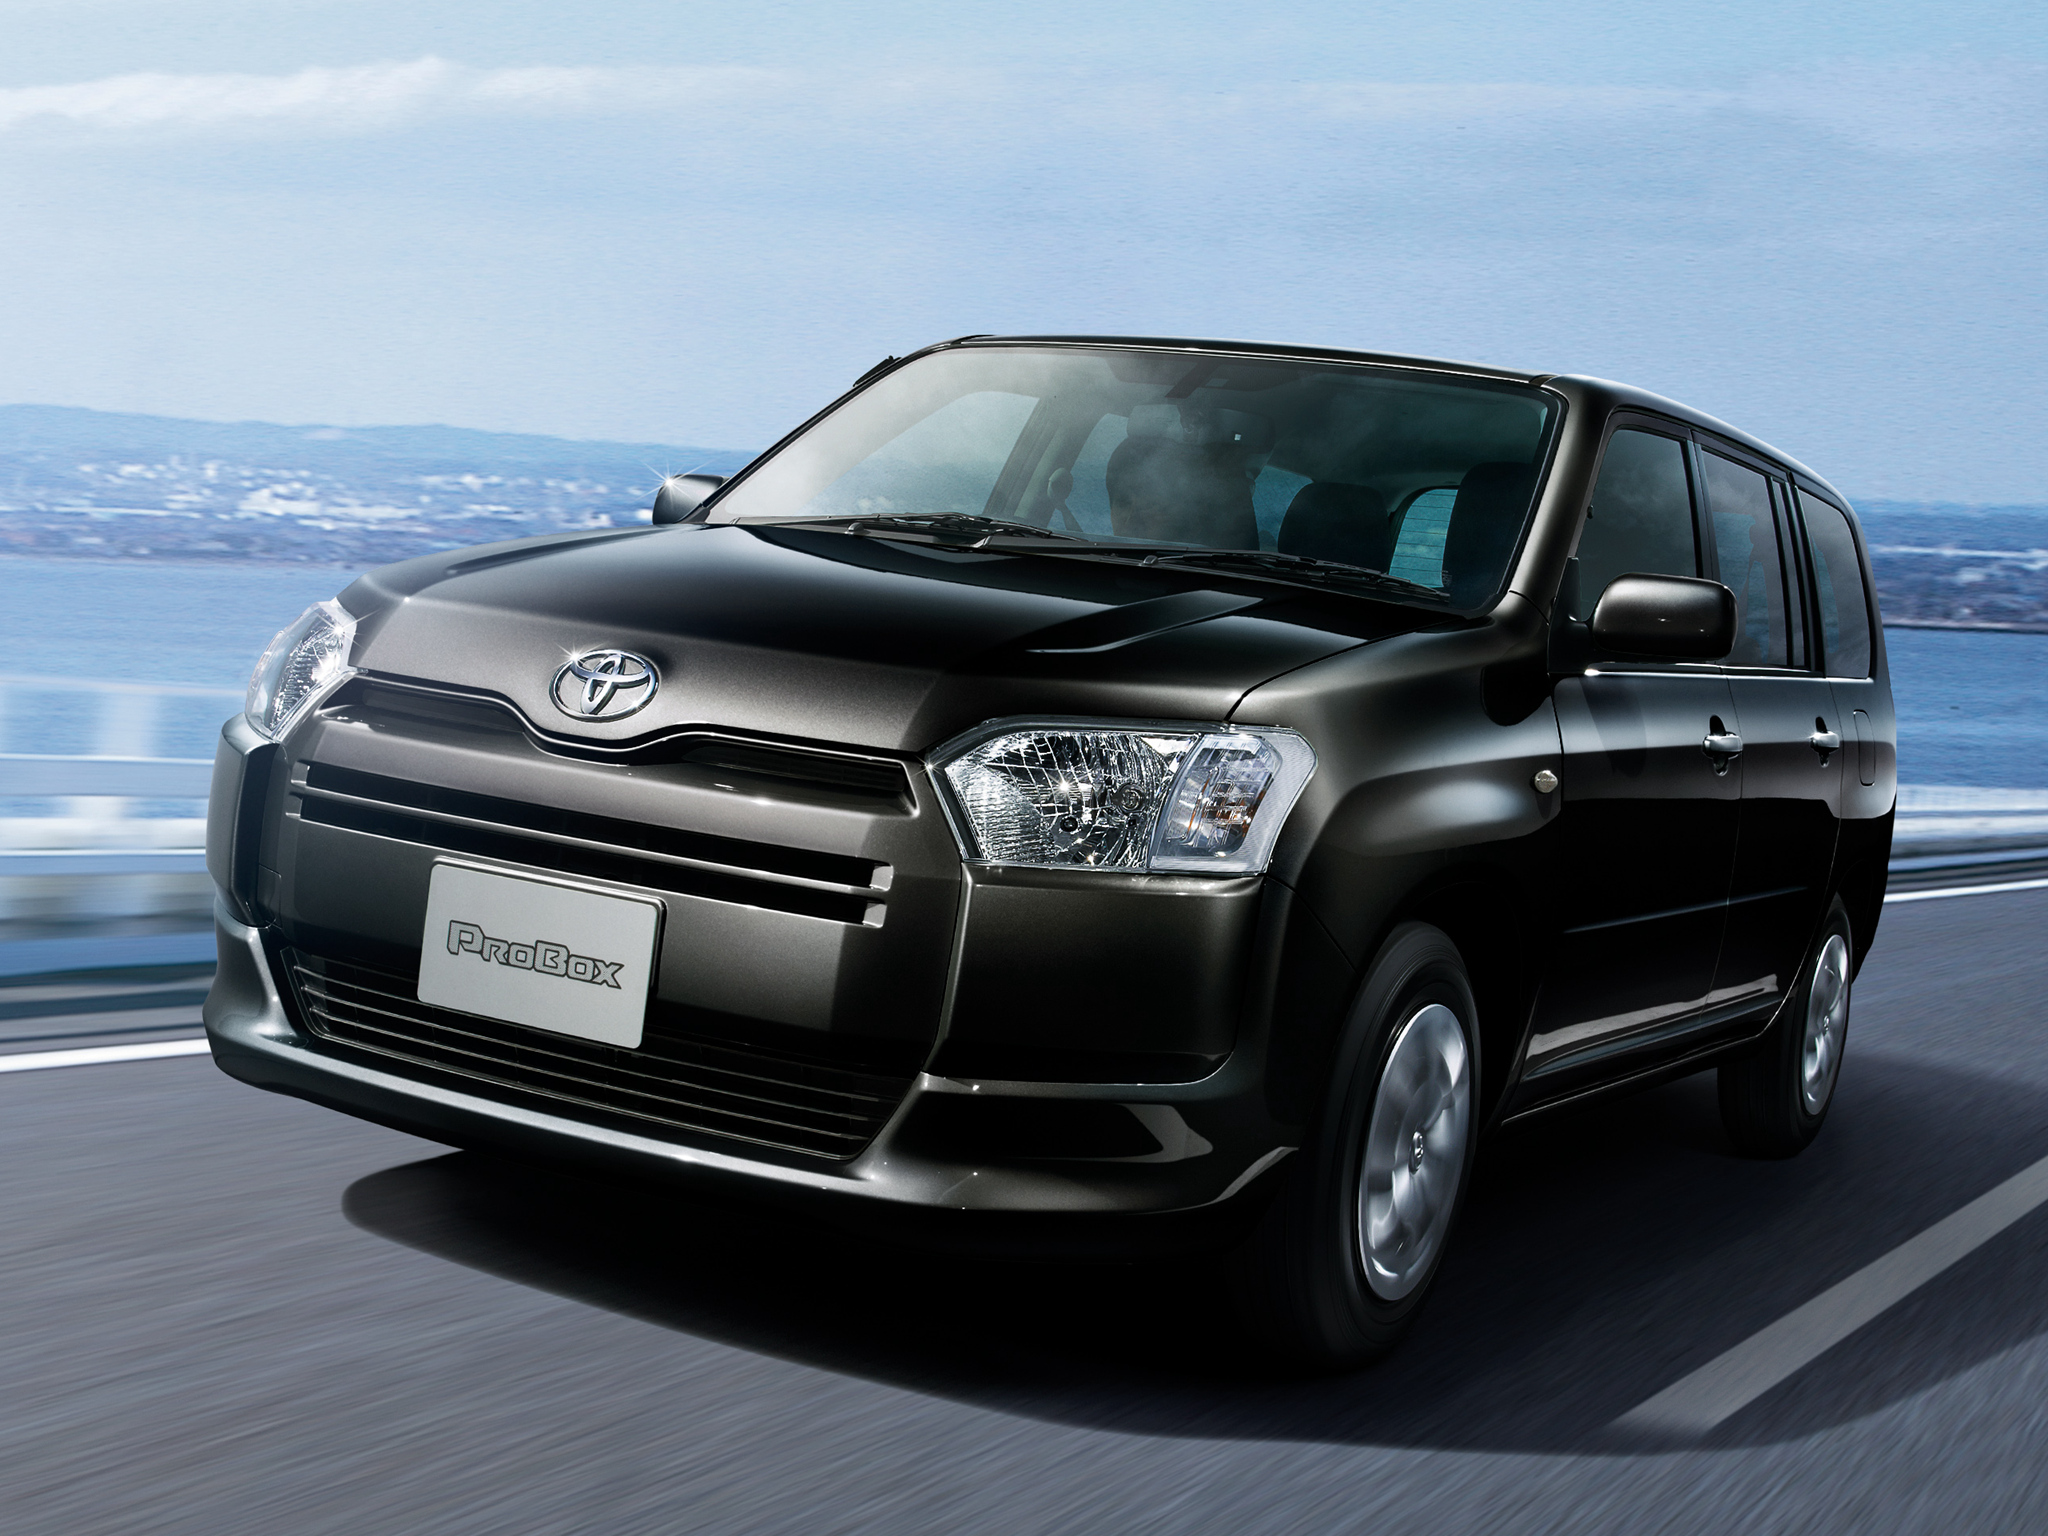 Toyota Rav4 Hybrid Used >> Toyota Launches New 2014 PROBOX and Succeed in Japan - autoevolution